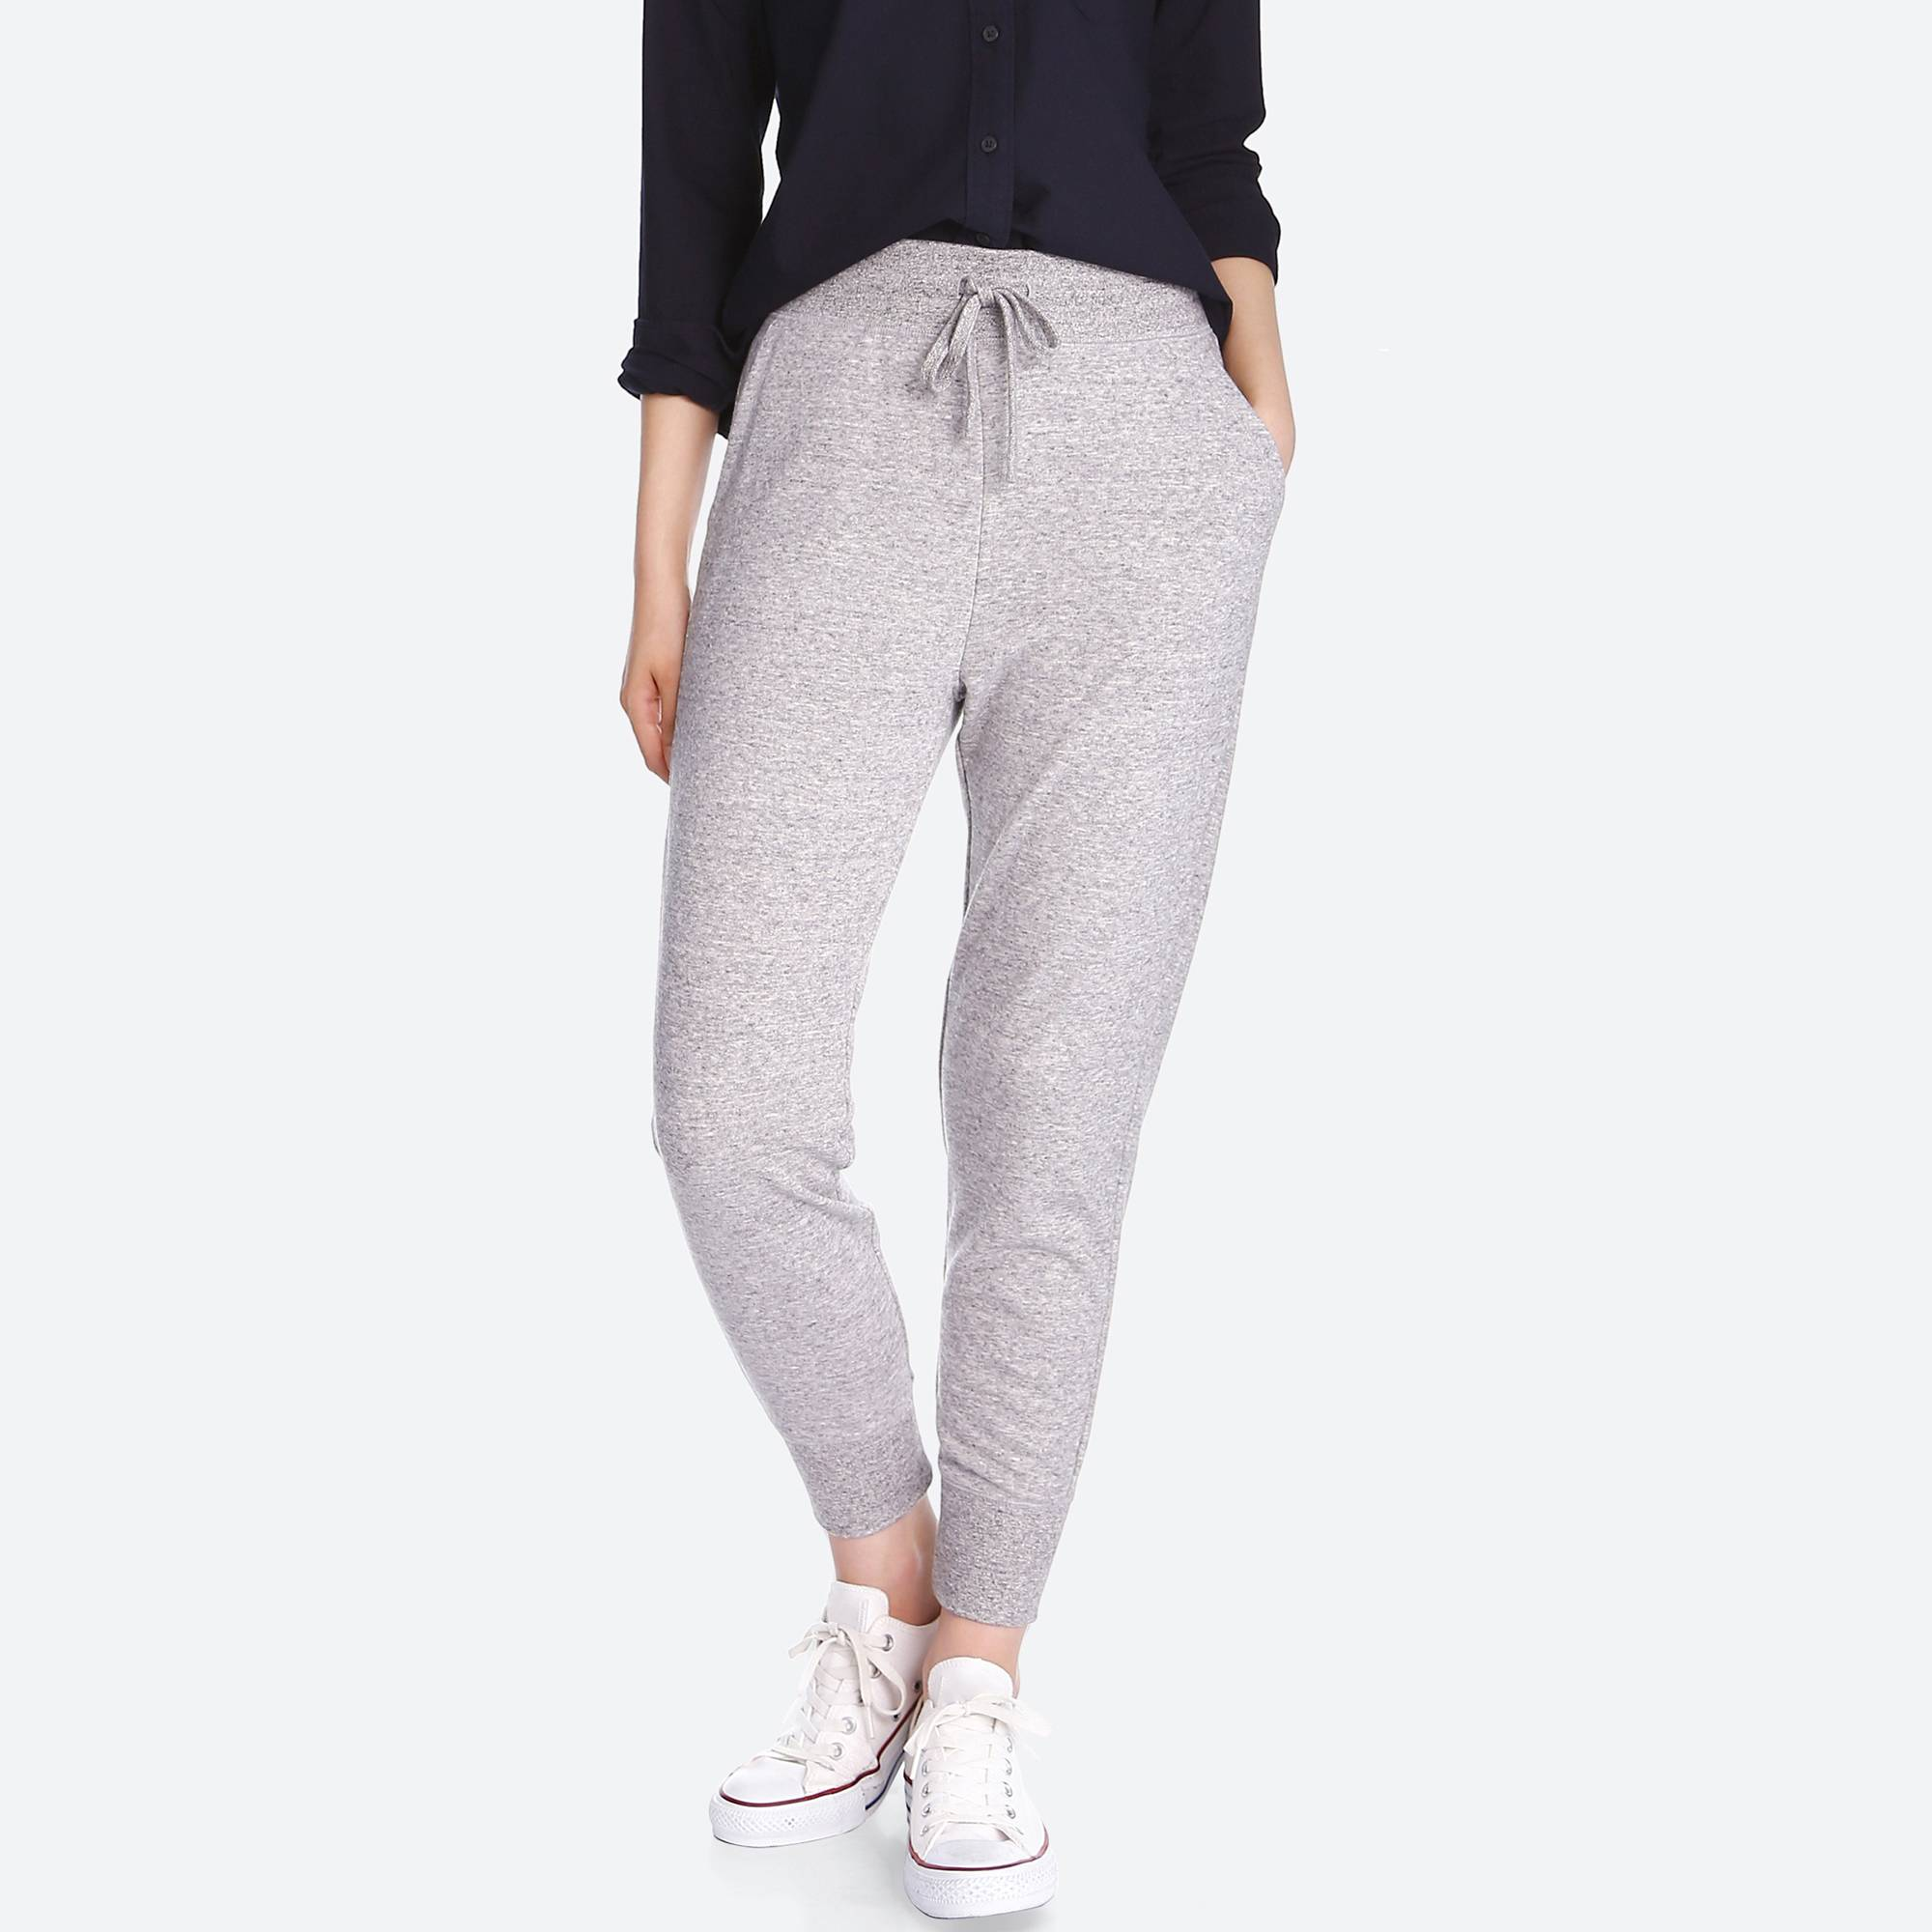 District types of womens sweatpants to consider